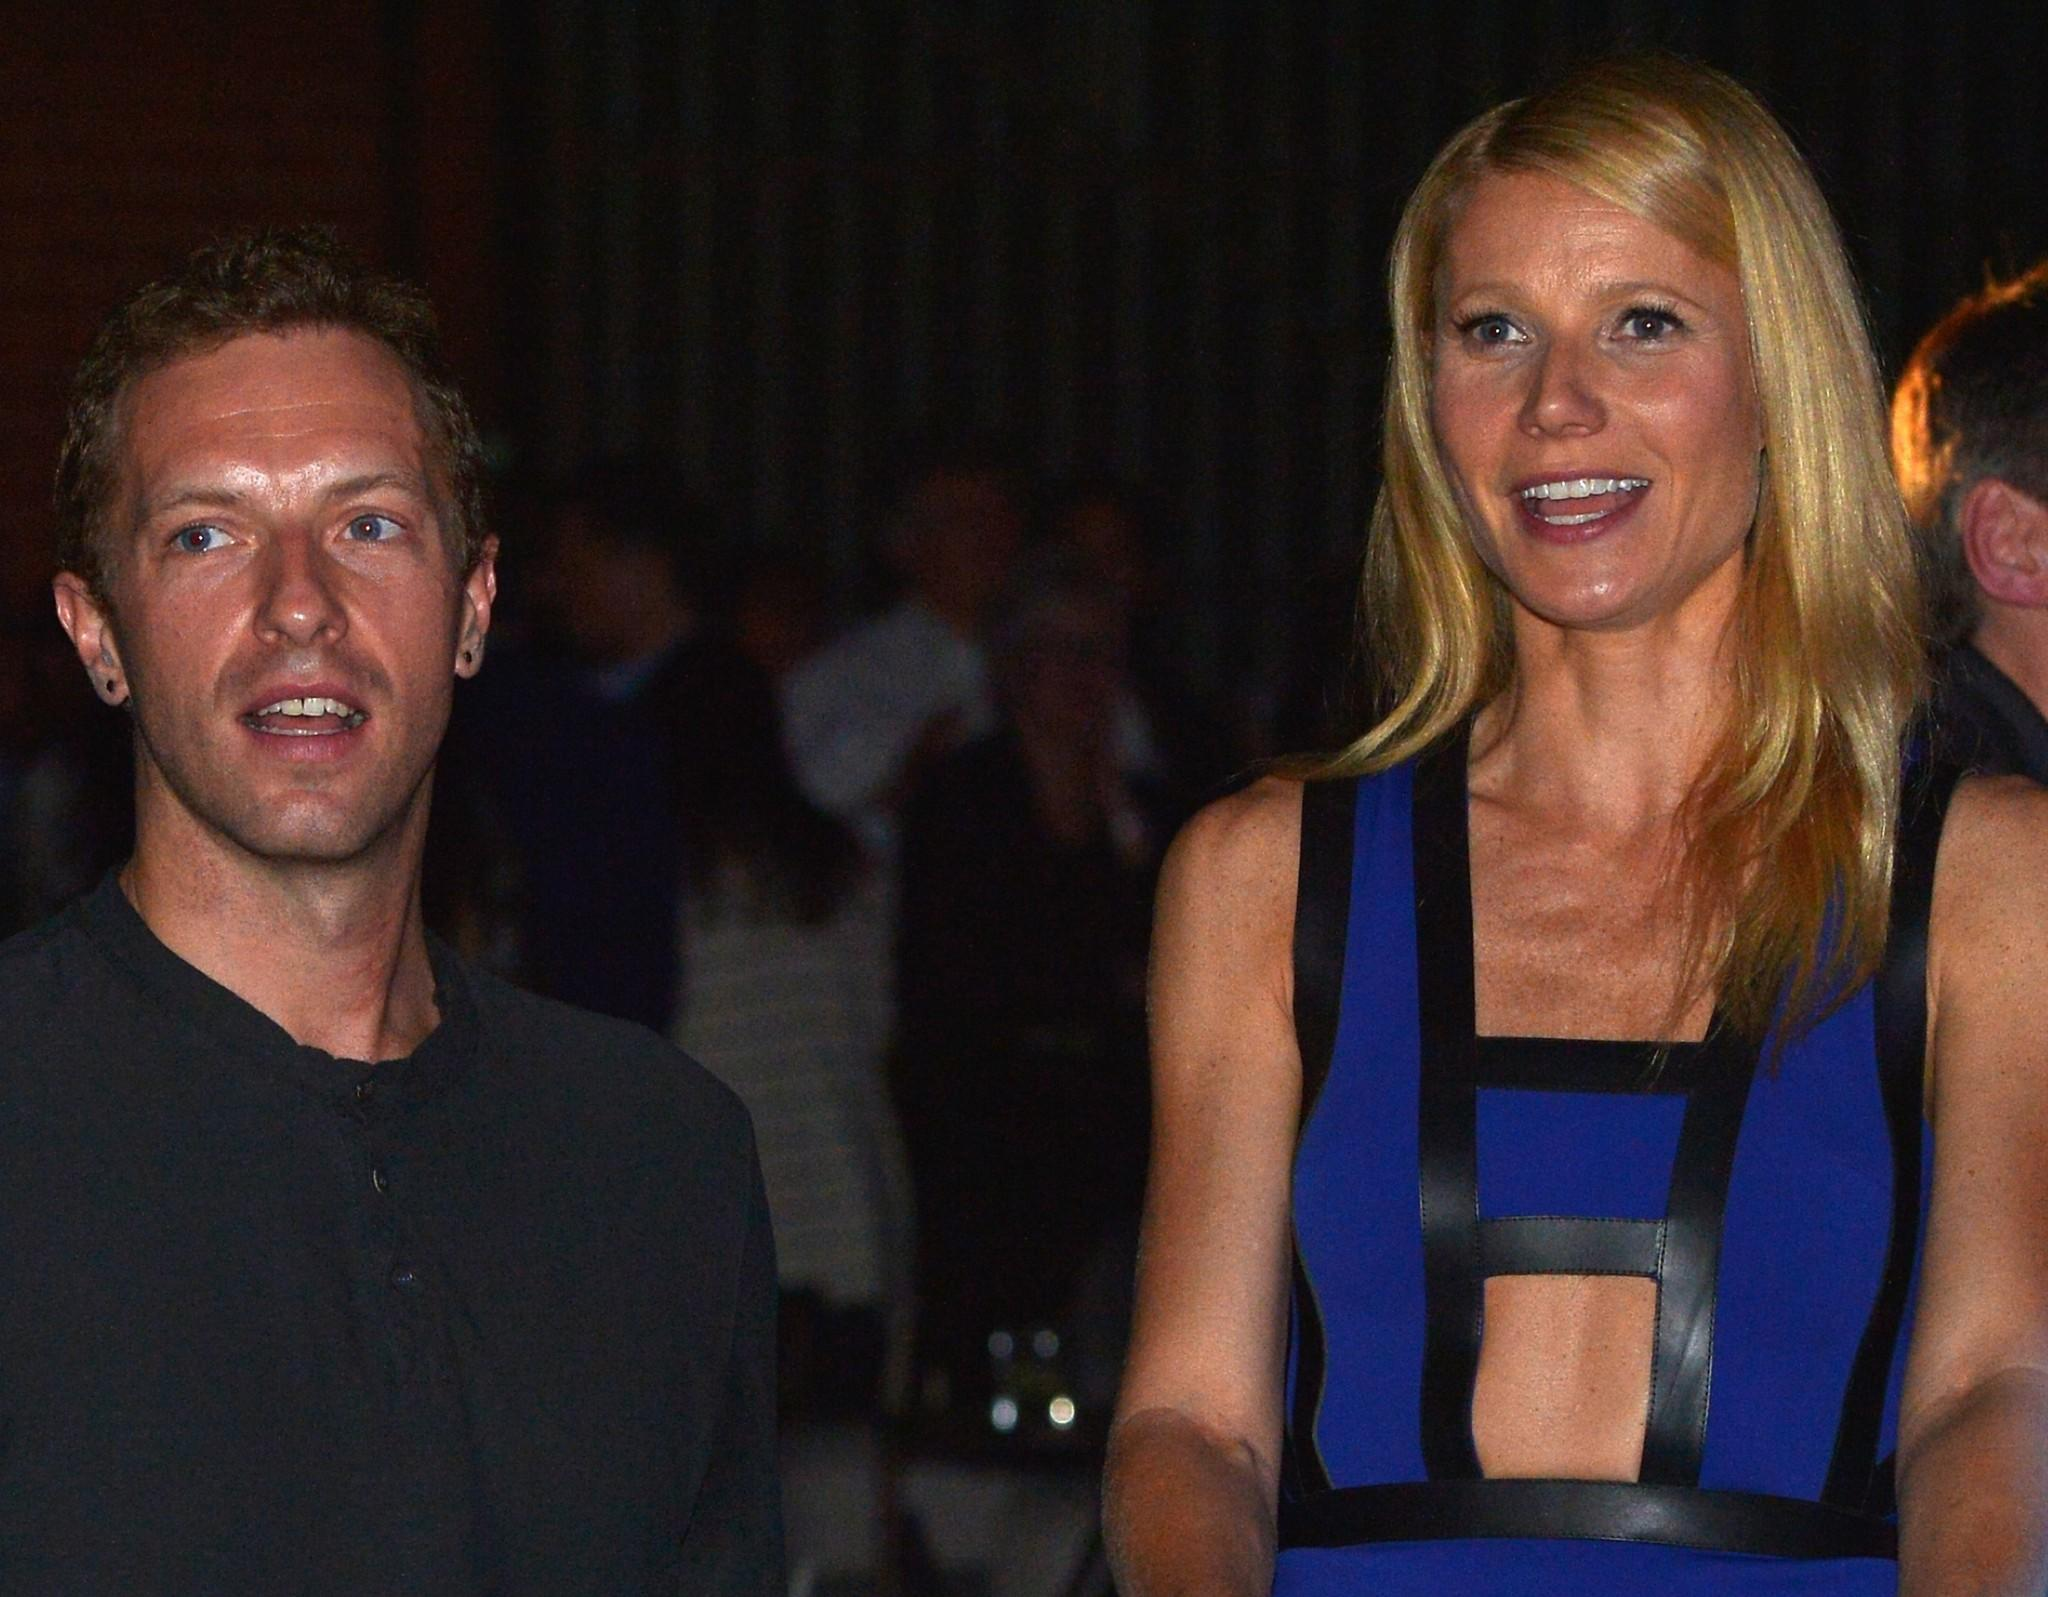 Gwyneth Paltrow and her husband, Chris Martin, have announced they're separating after more than 10 years of marriage.